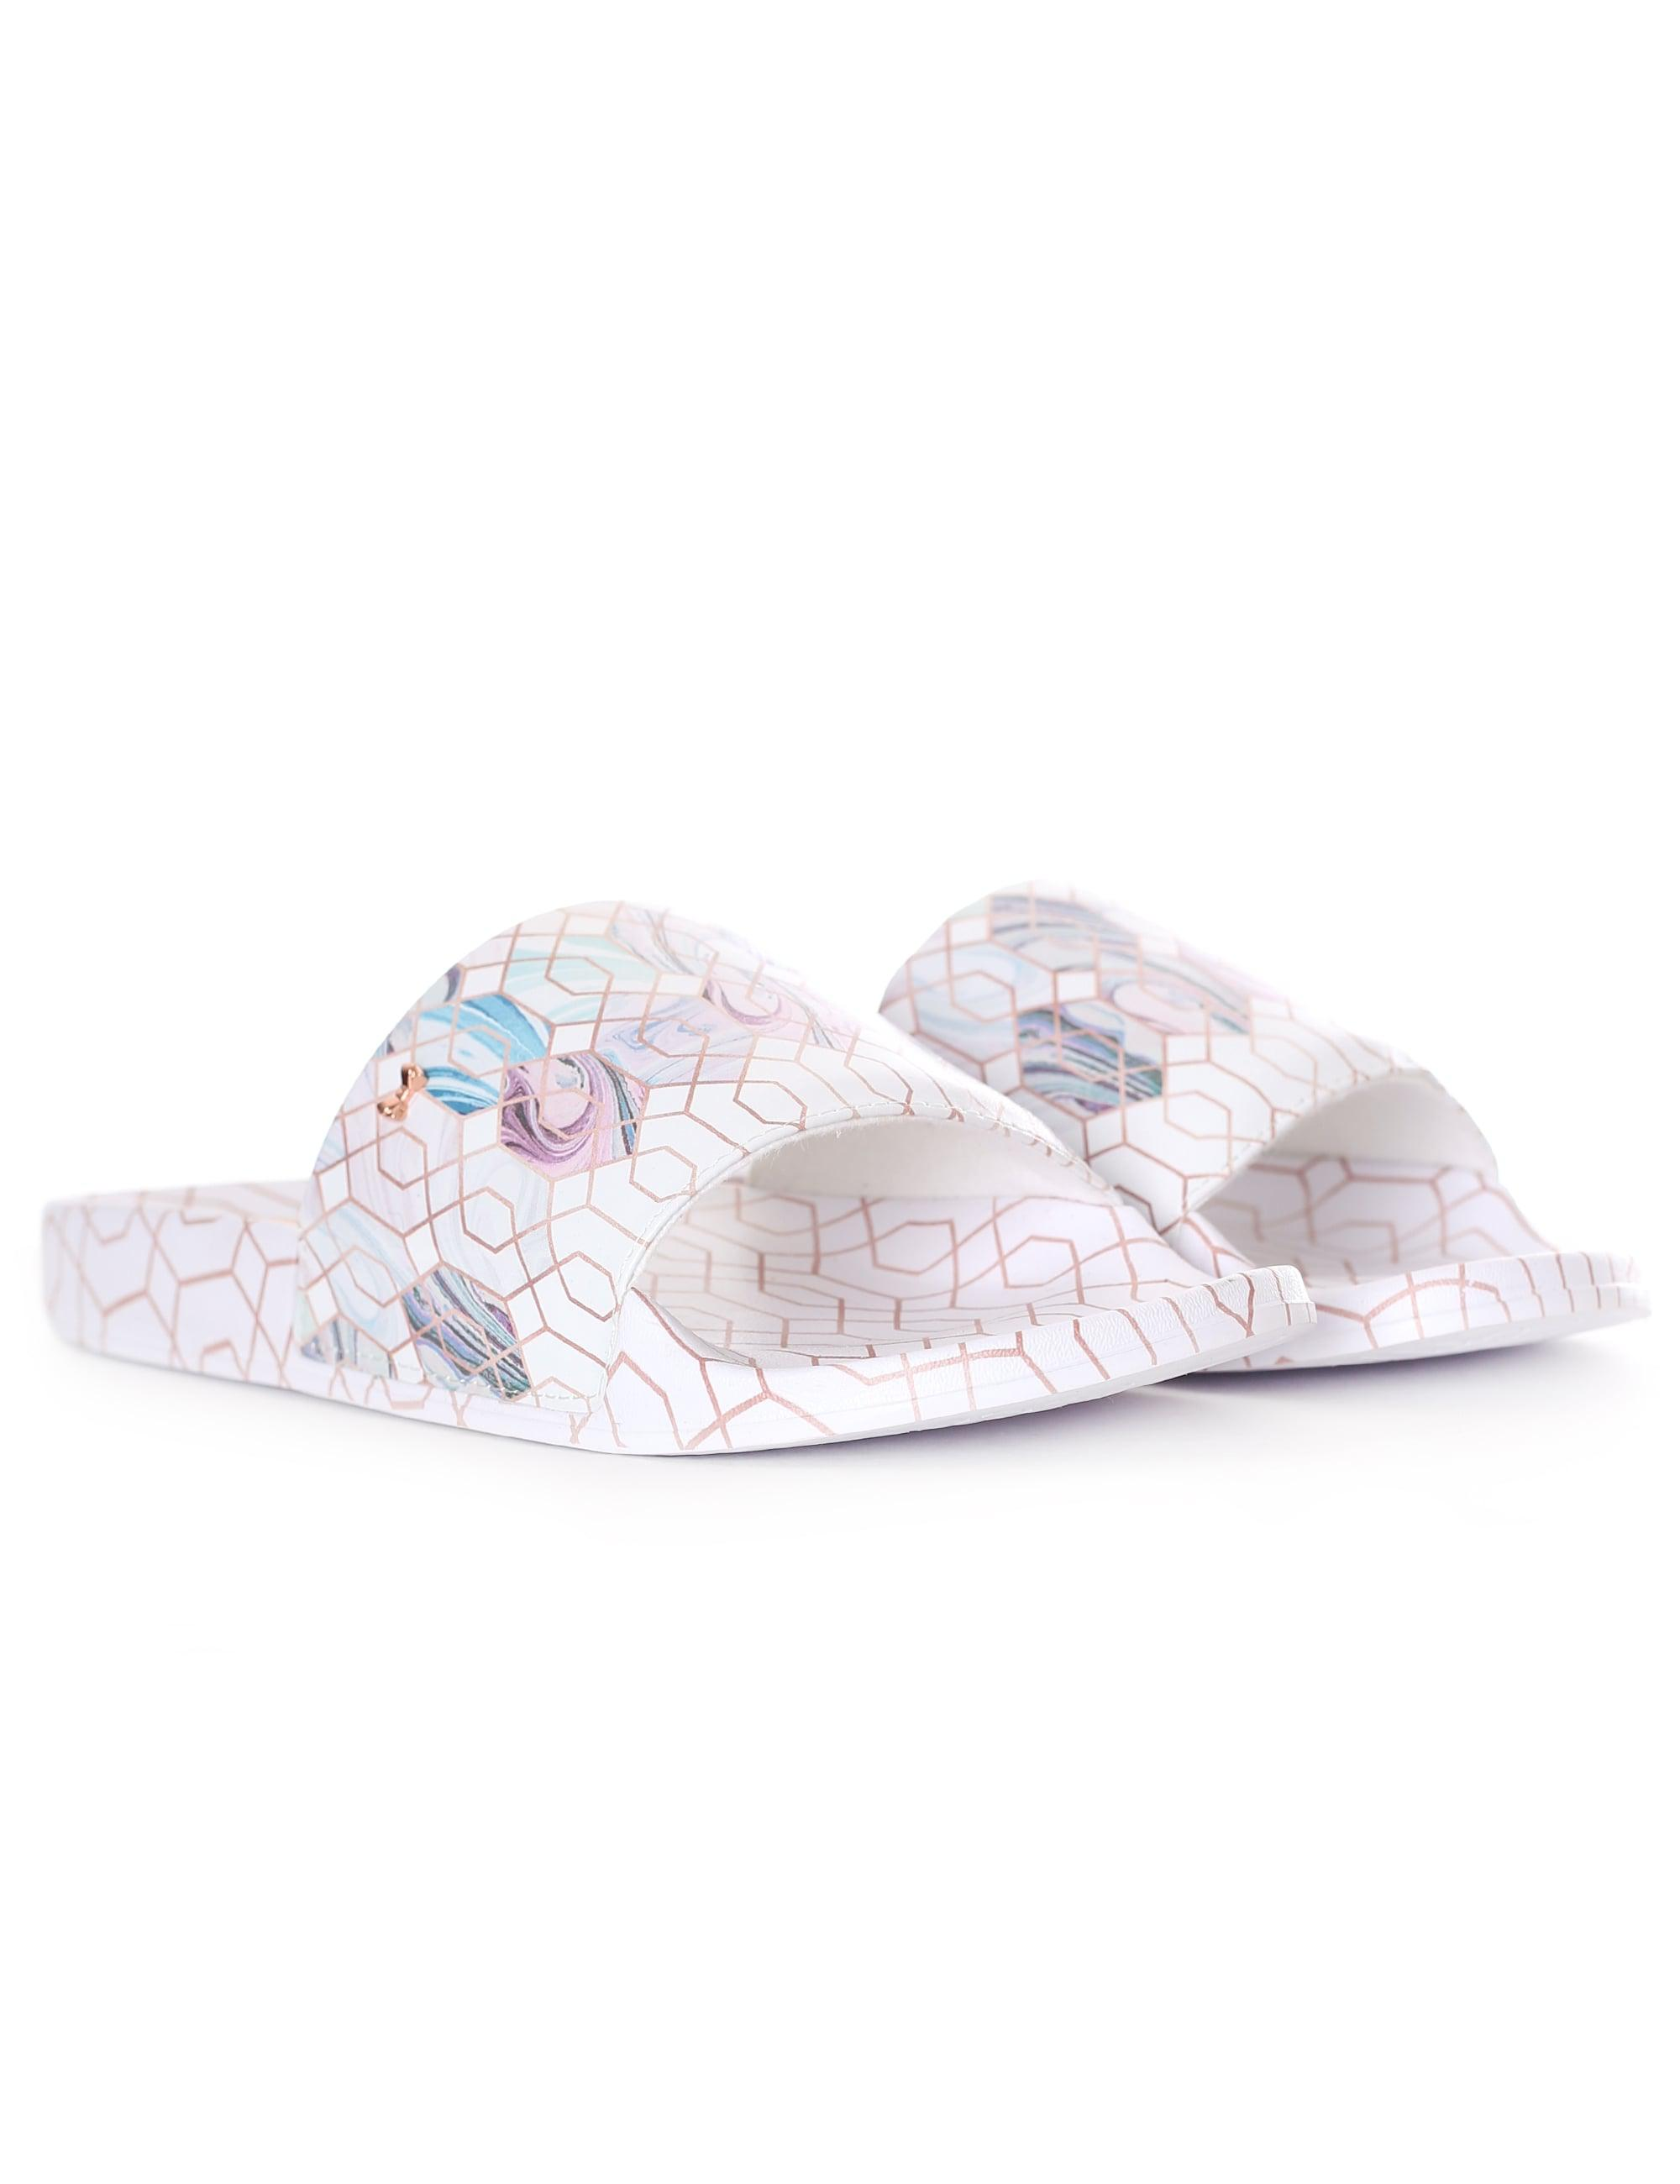 41b0c8855f10 Ted Baker Printed Sliders - Lyst